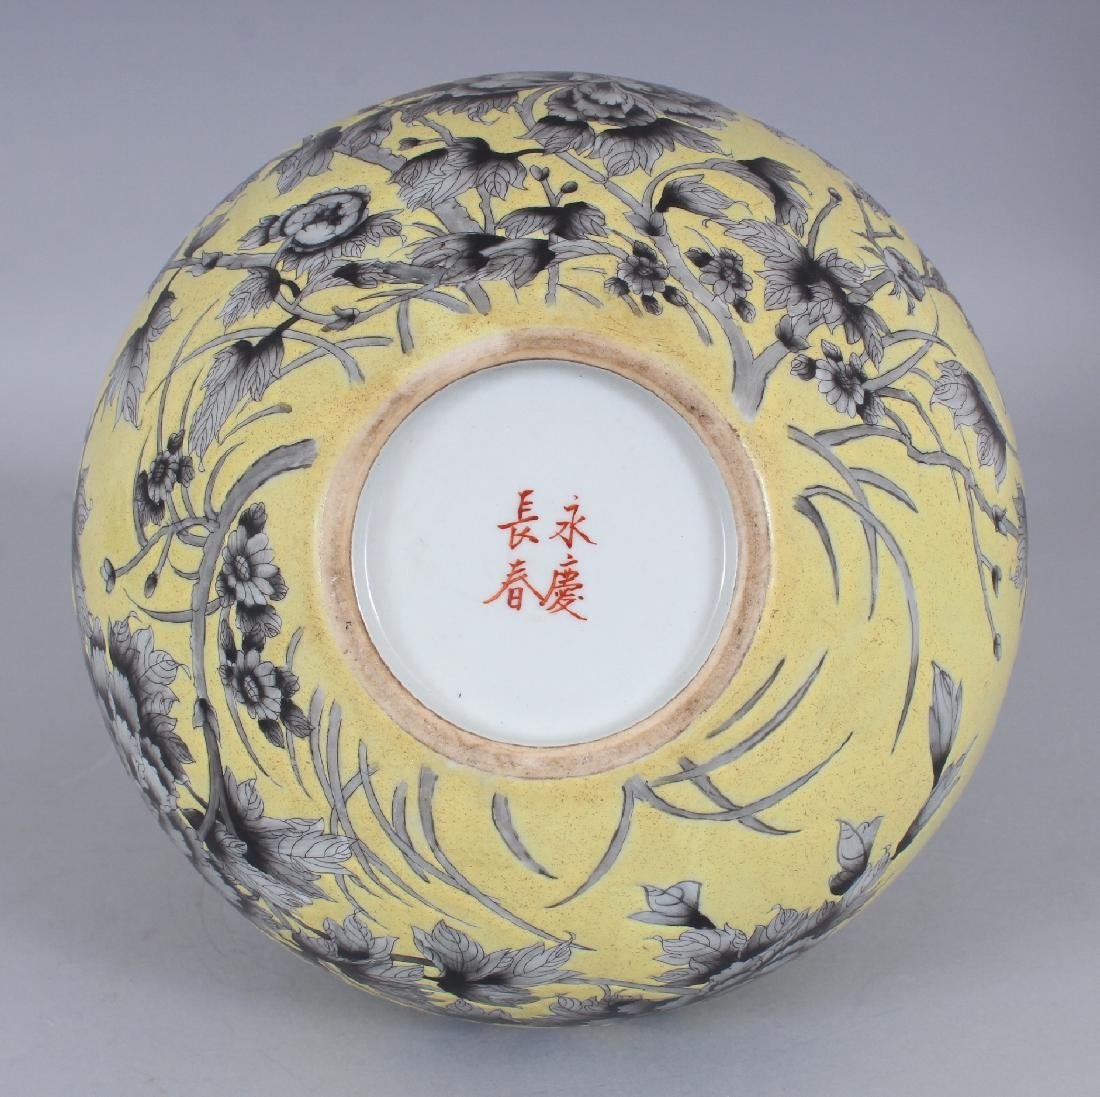 A CHINESE DAYA ZHAI STYLE YELLOW GROUND DOUBLE GOURD - 8